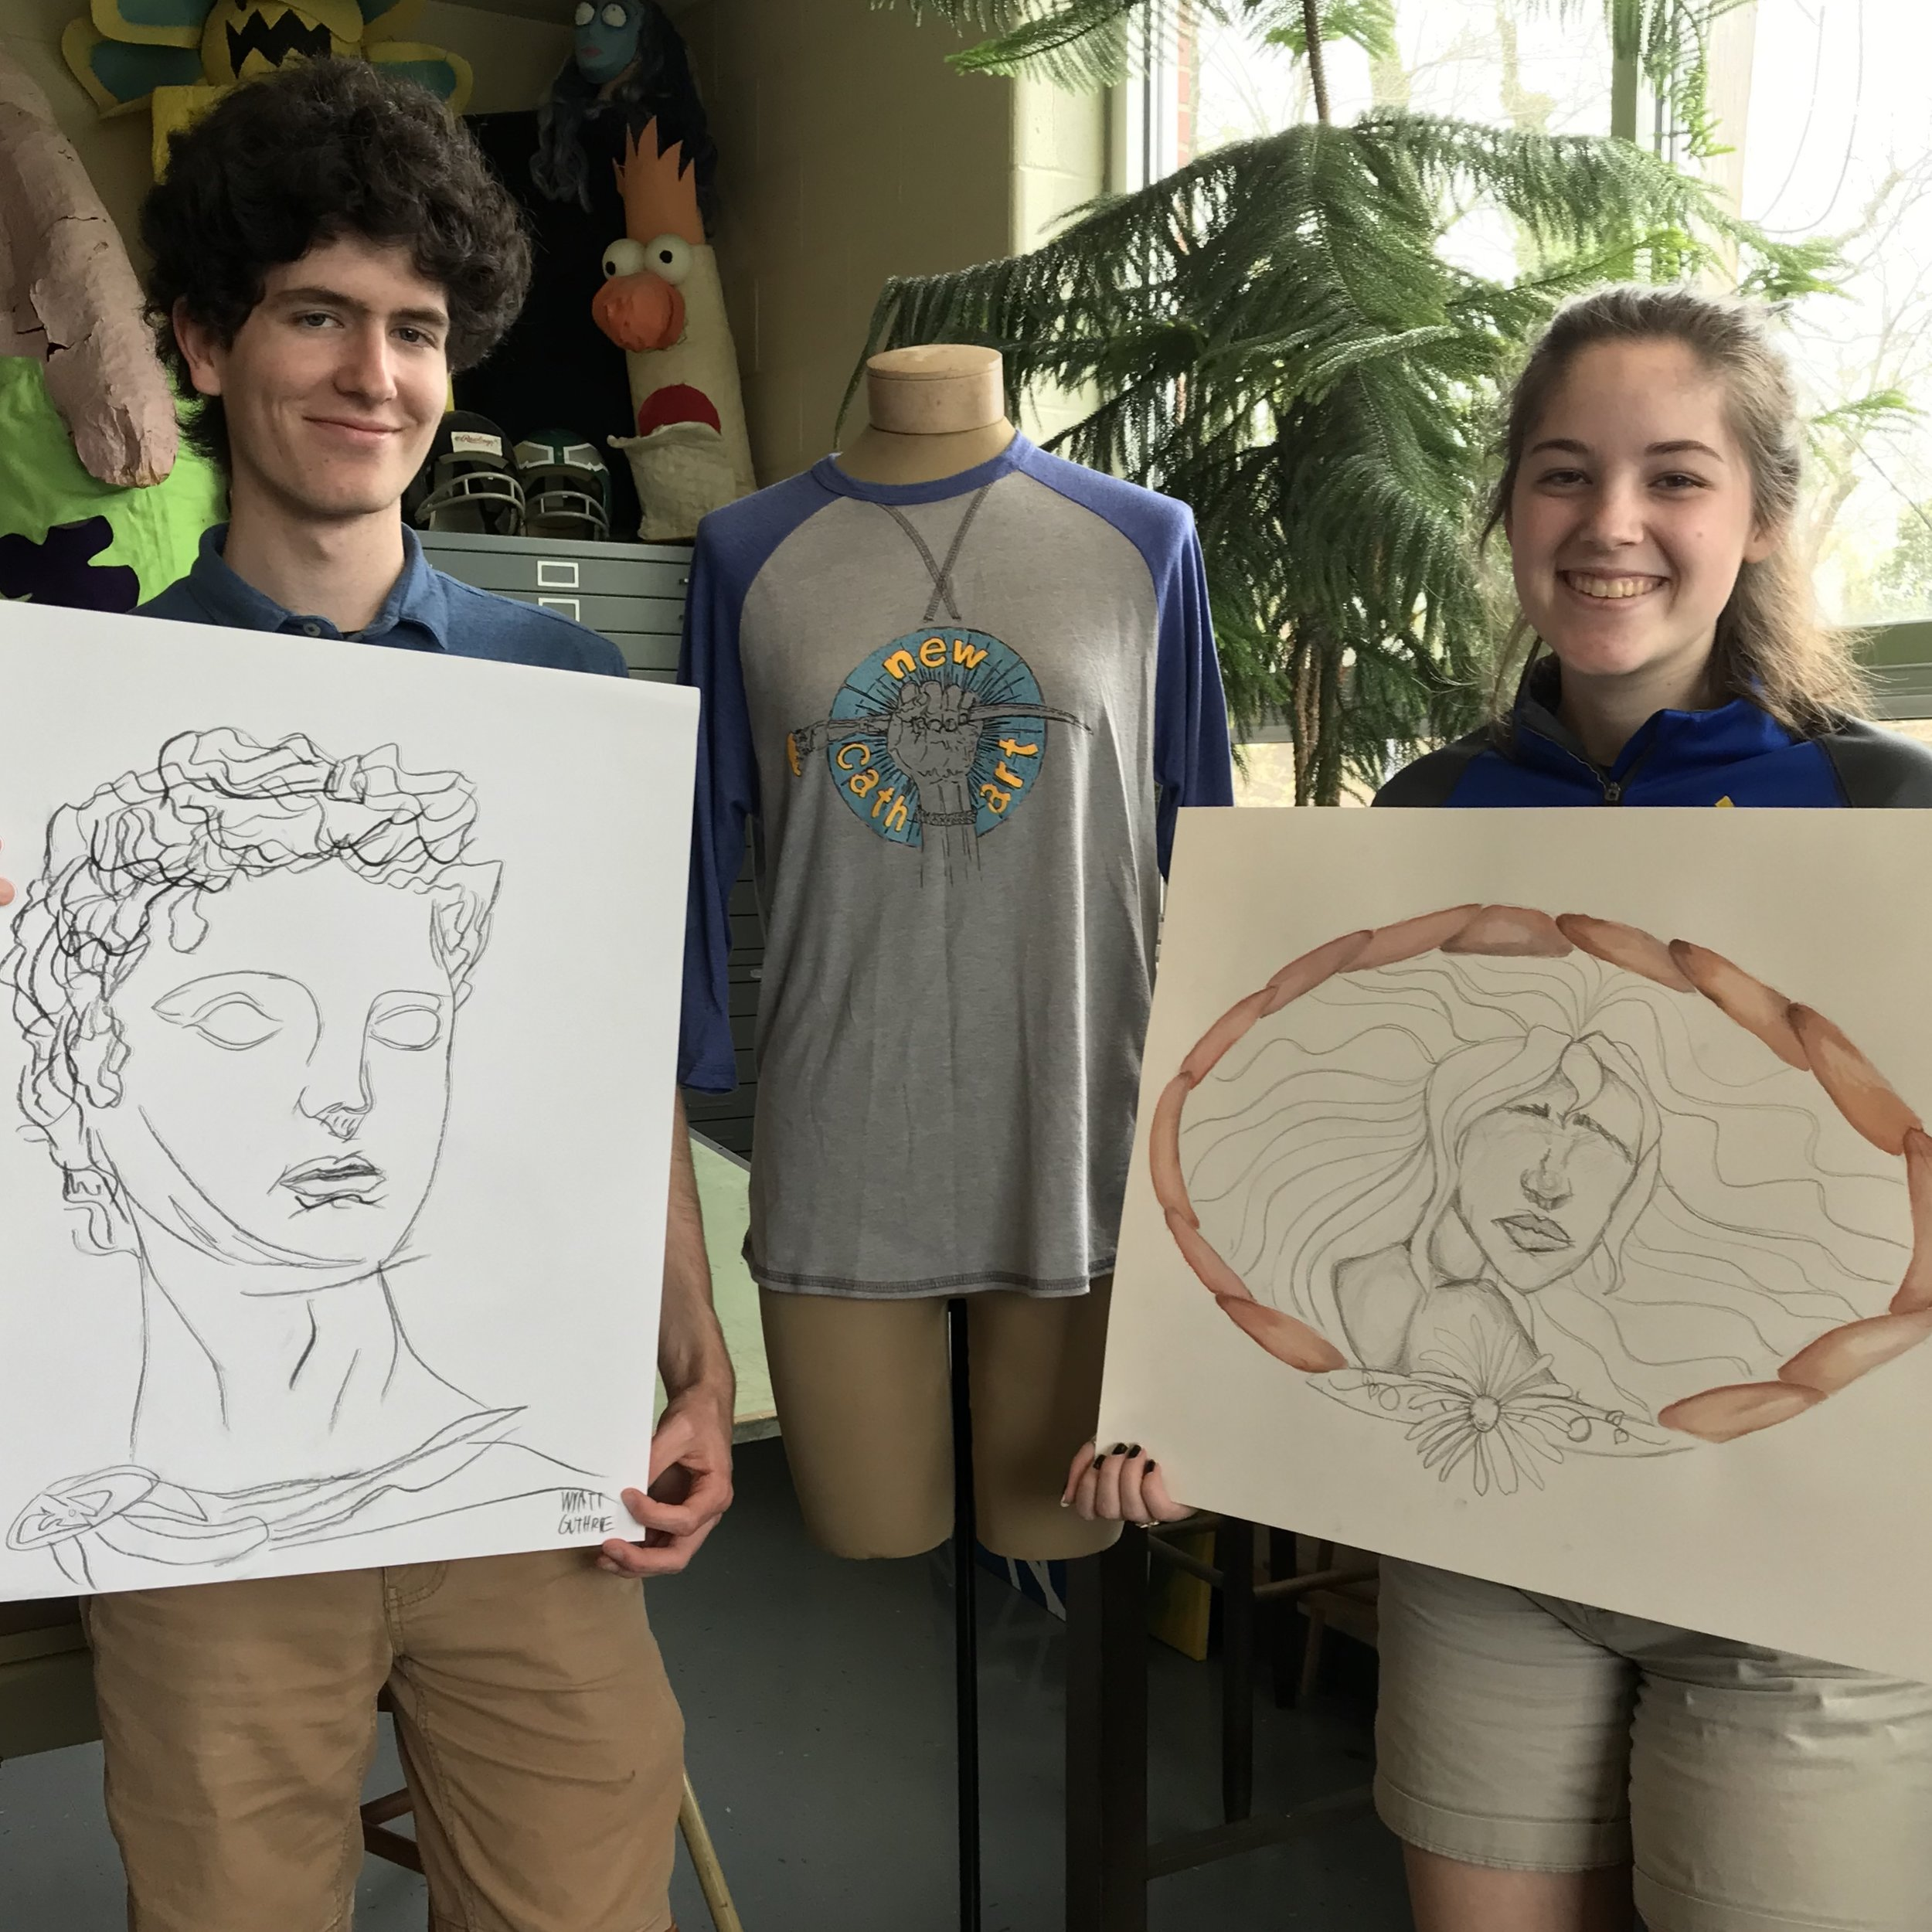 Wyatt Guthrie has been selected to participate in the 2019 Governor's School for the Arts program in the discipline of Visual Art. Junior Grace Kessen has been selected as an alternate.